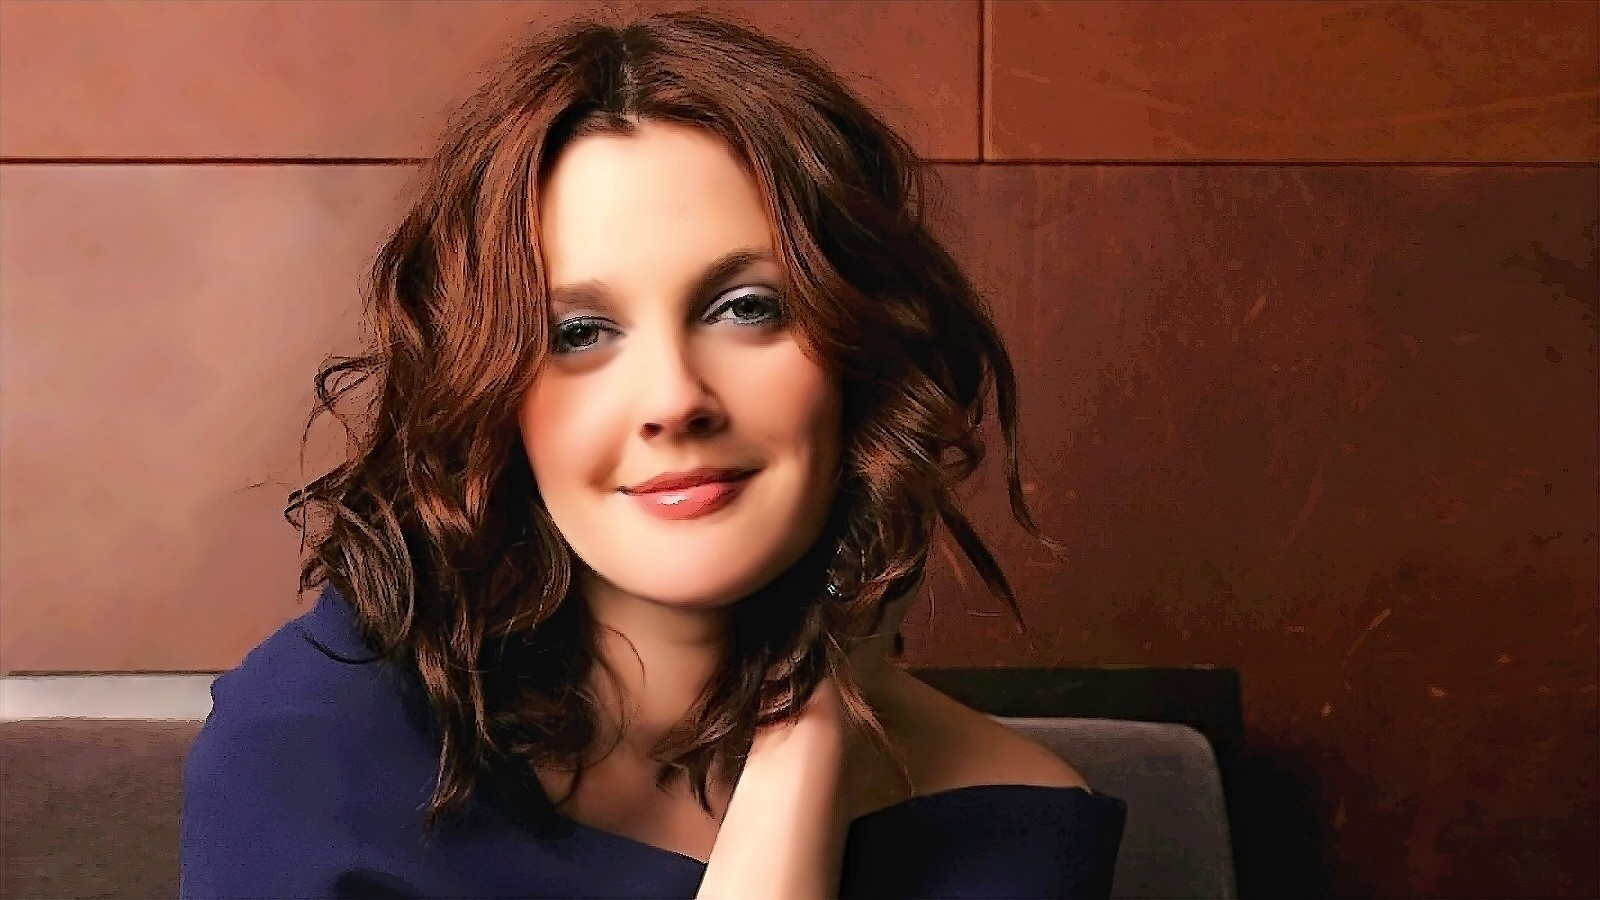 Drew Barrymore Celebrity HD Wallpaper 2